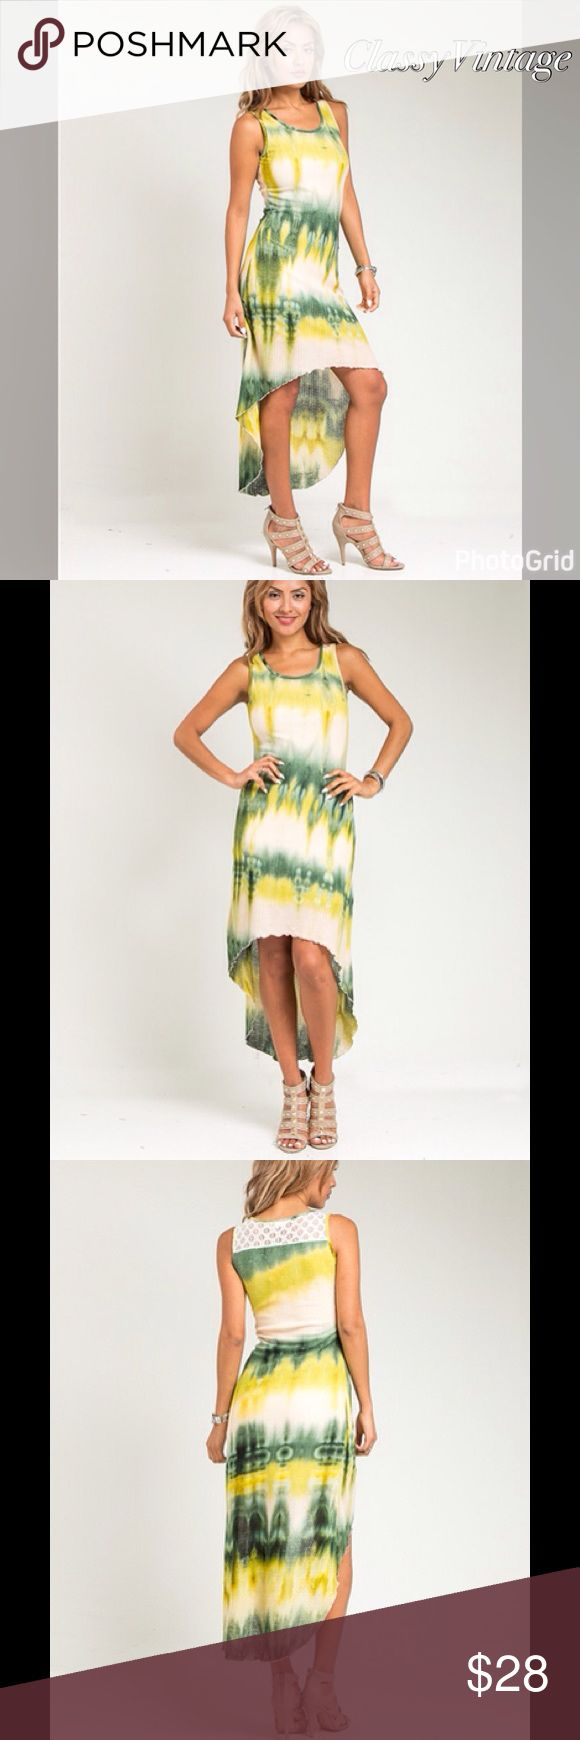 Hot tie dyed hi low dress Hot spring colors in this fun tie dyed hi low dress. Form fitting with a lace inset in top back. boutique Dresses High Low